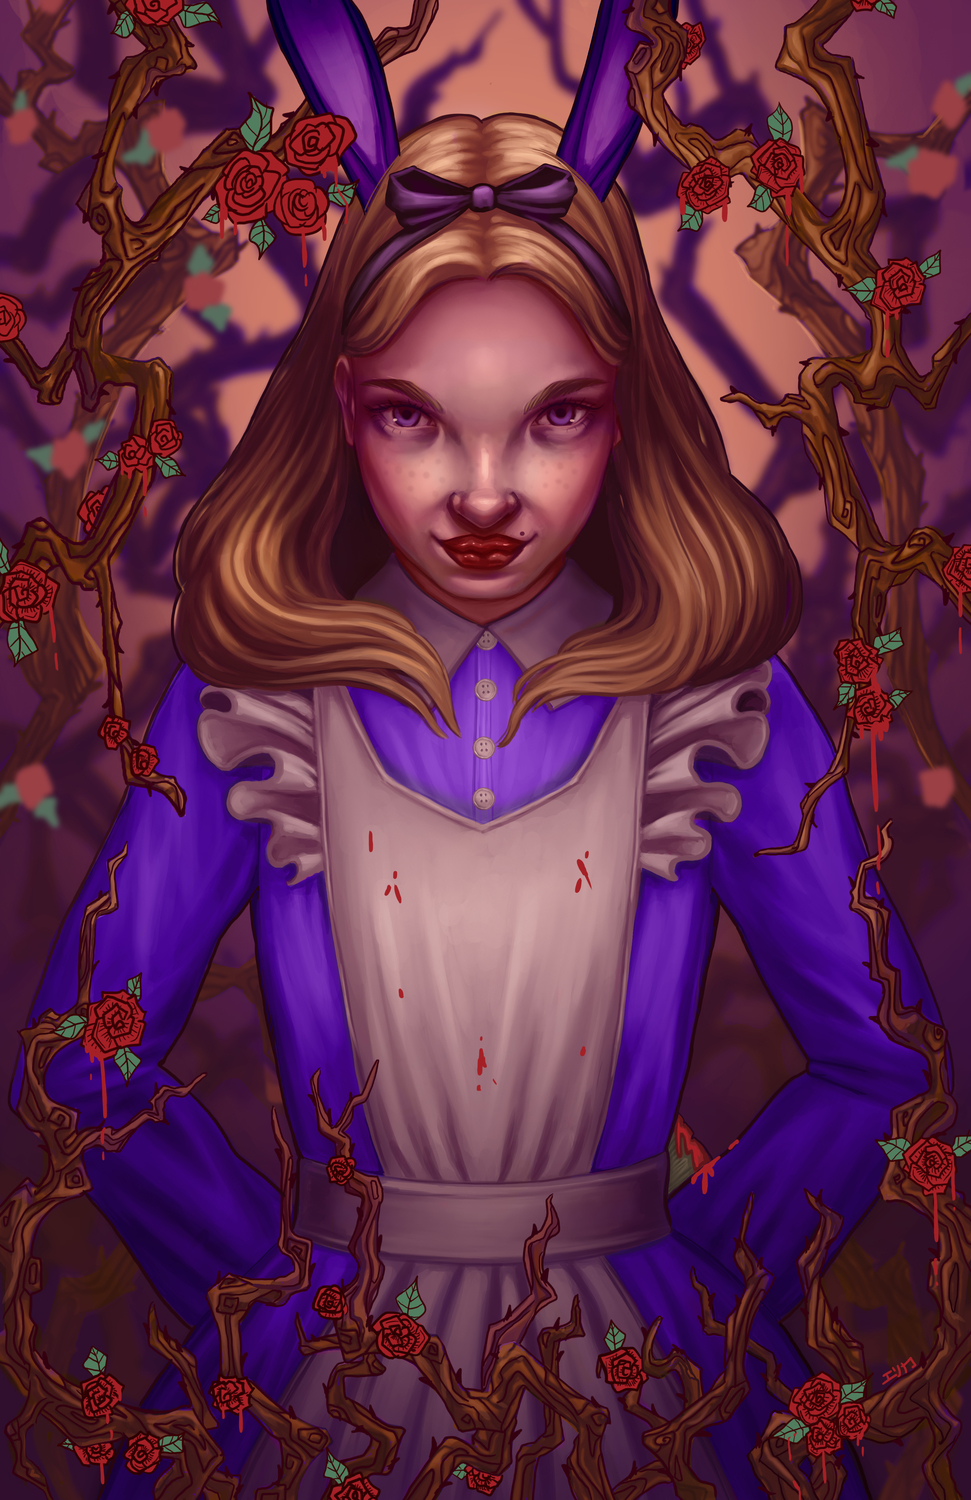 Alice Artwork by Erica Willey